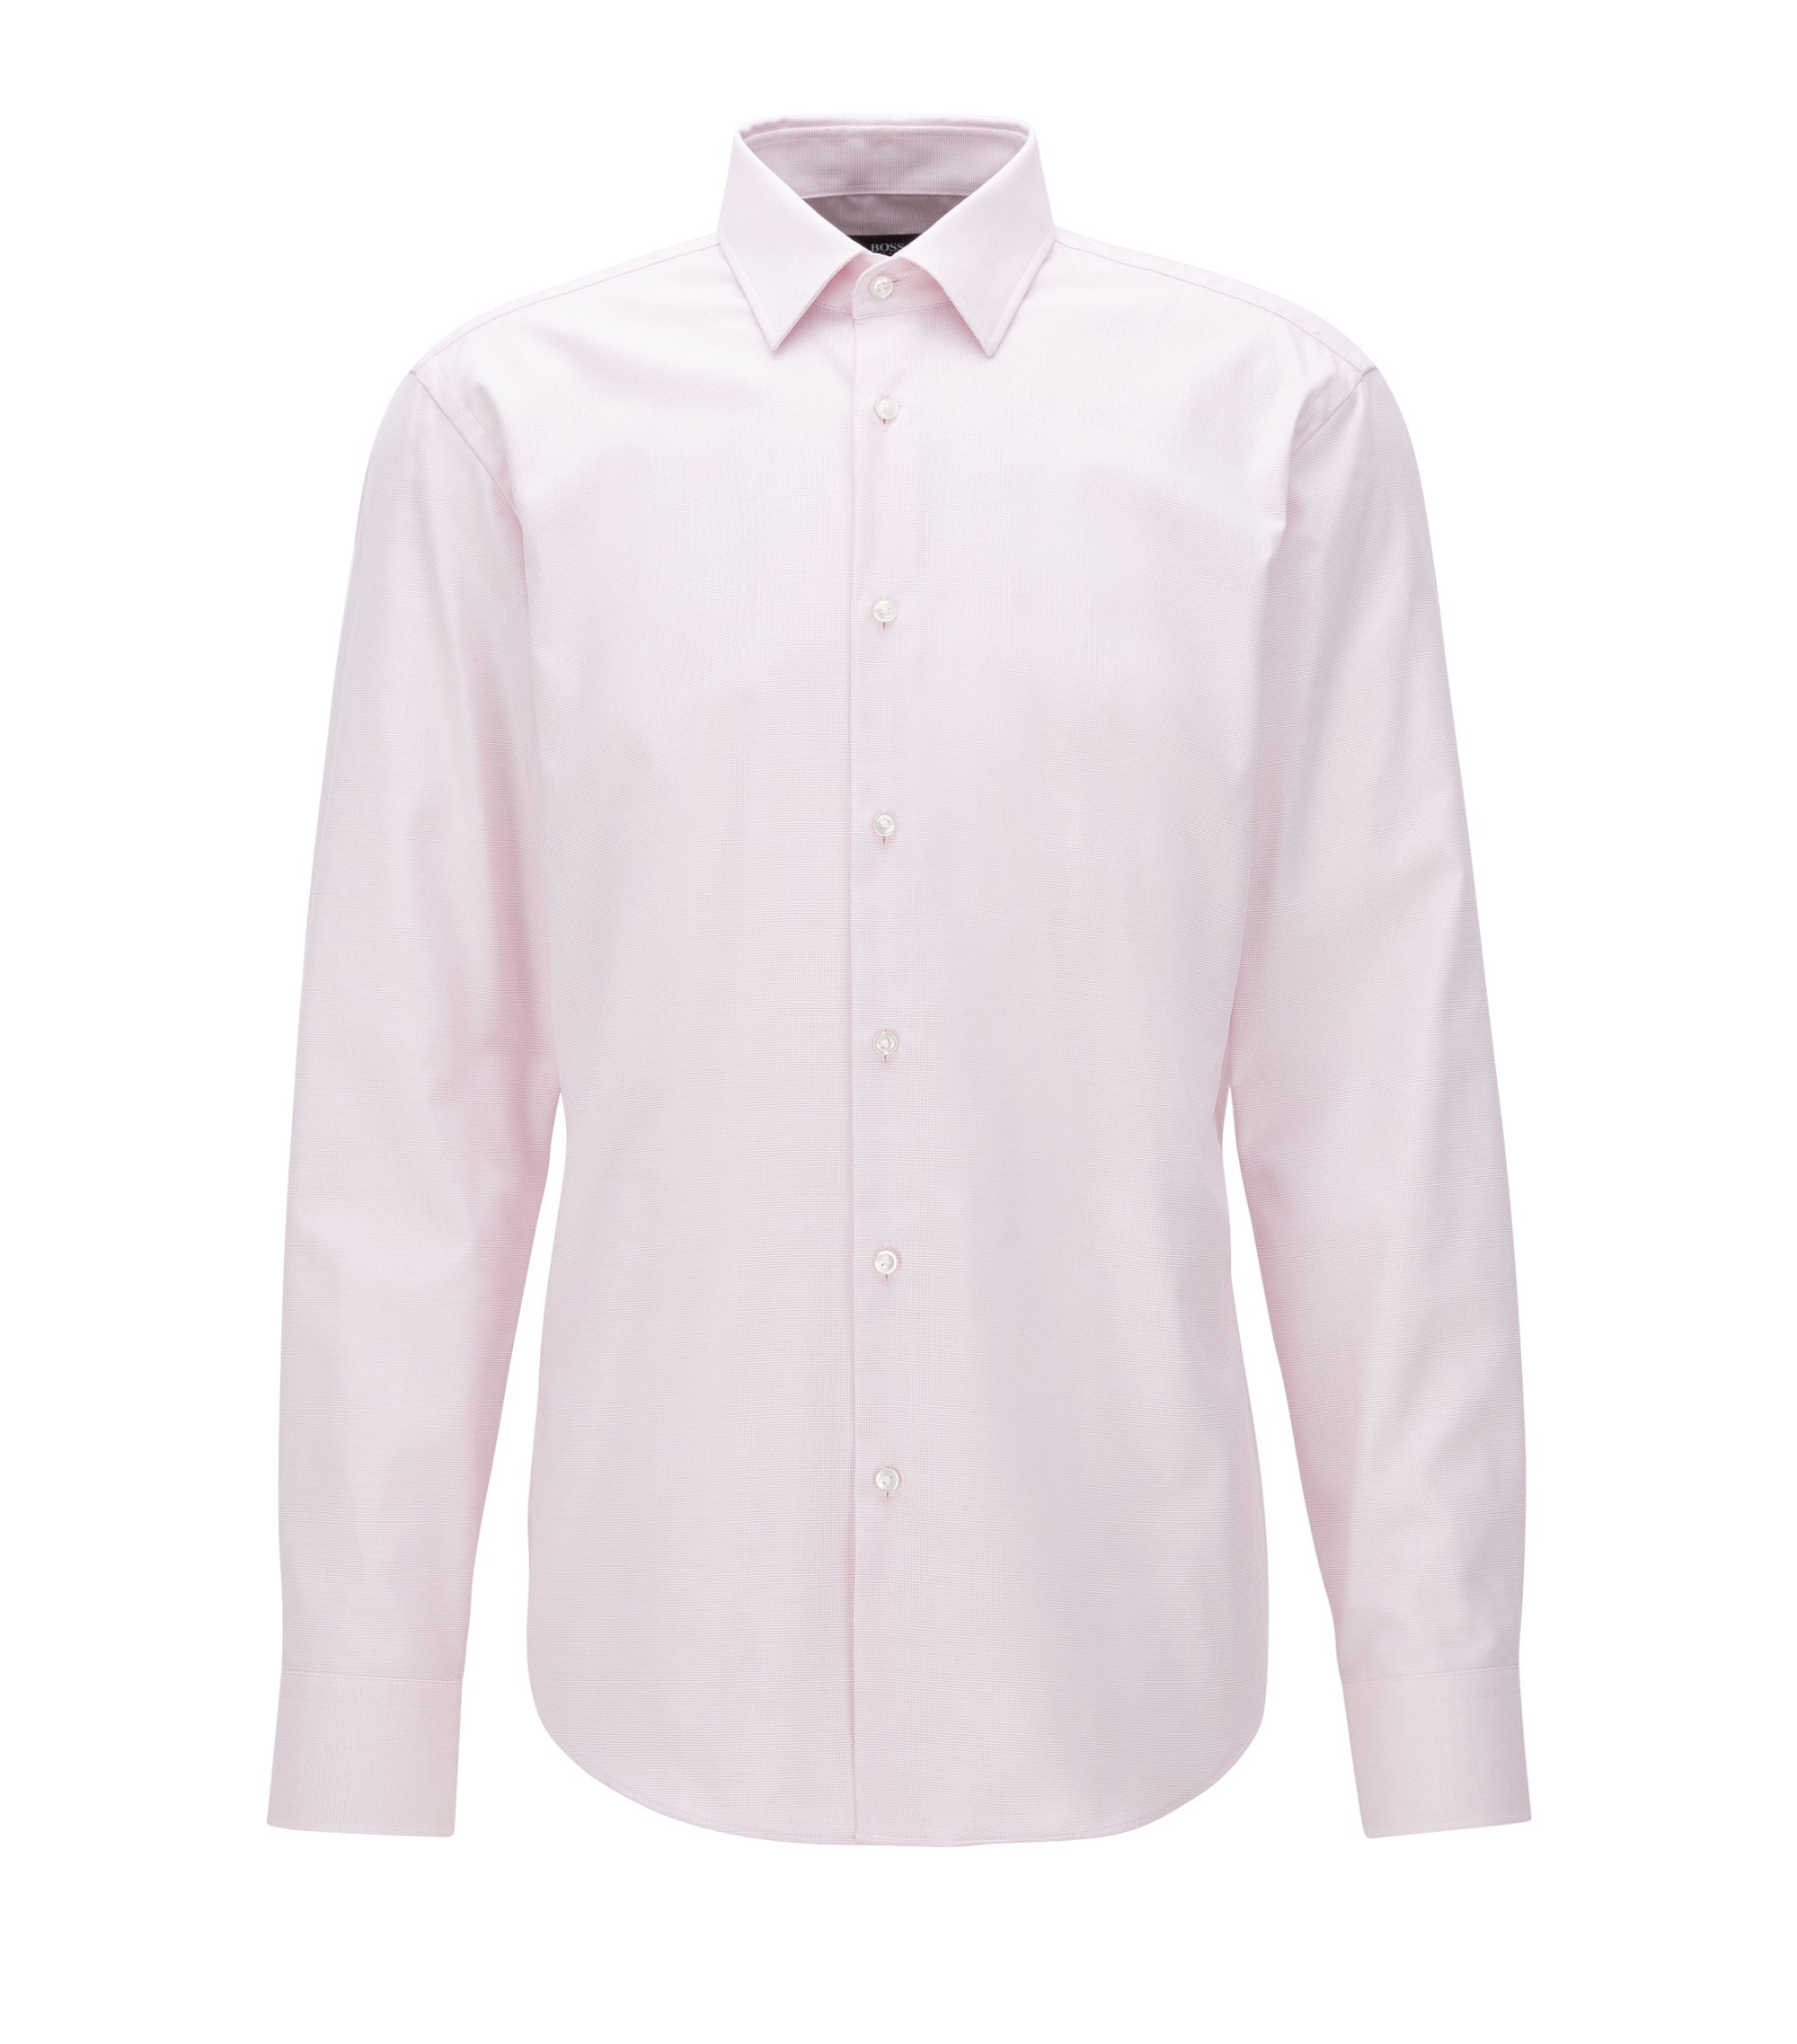 Regular-fit shirt in cotton poplin, light pink